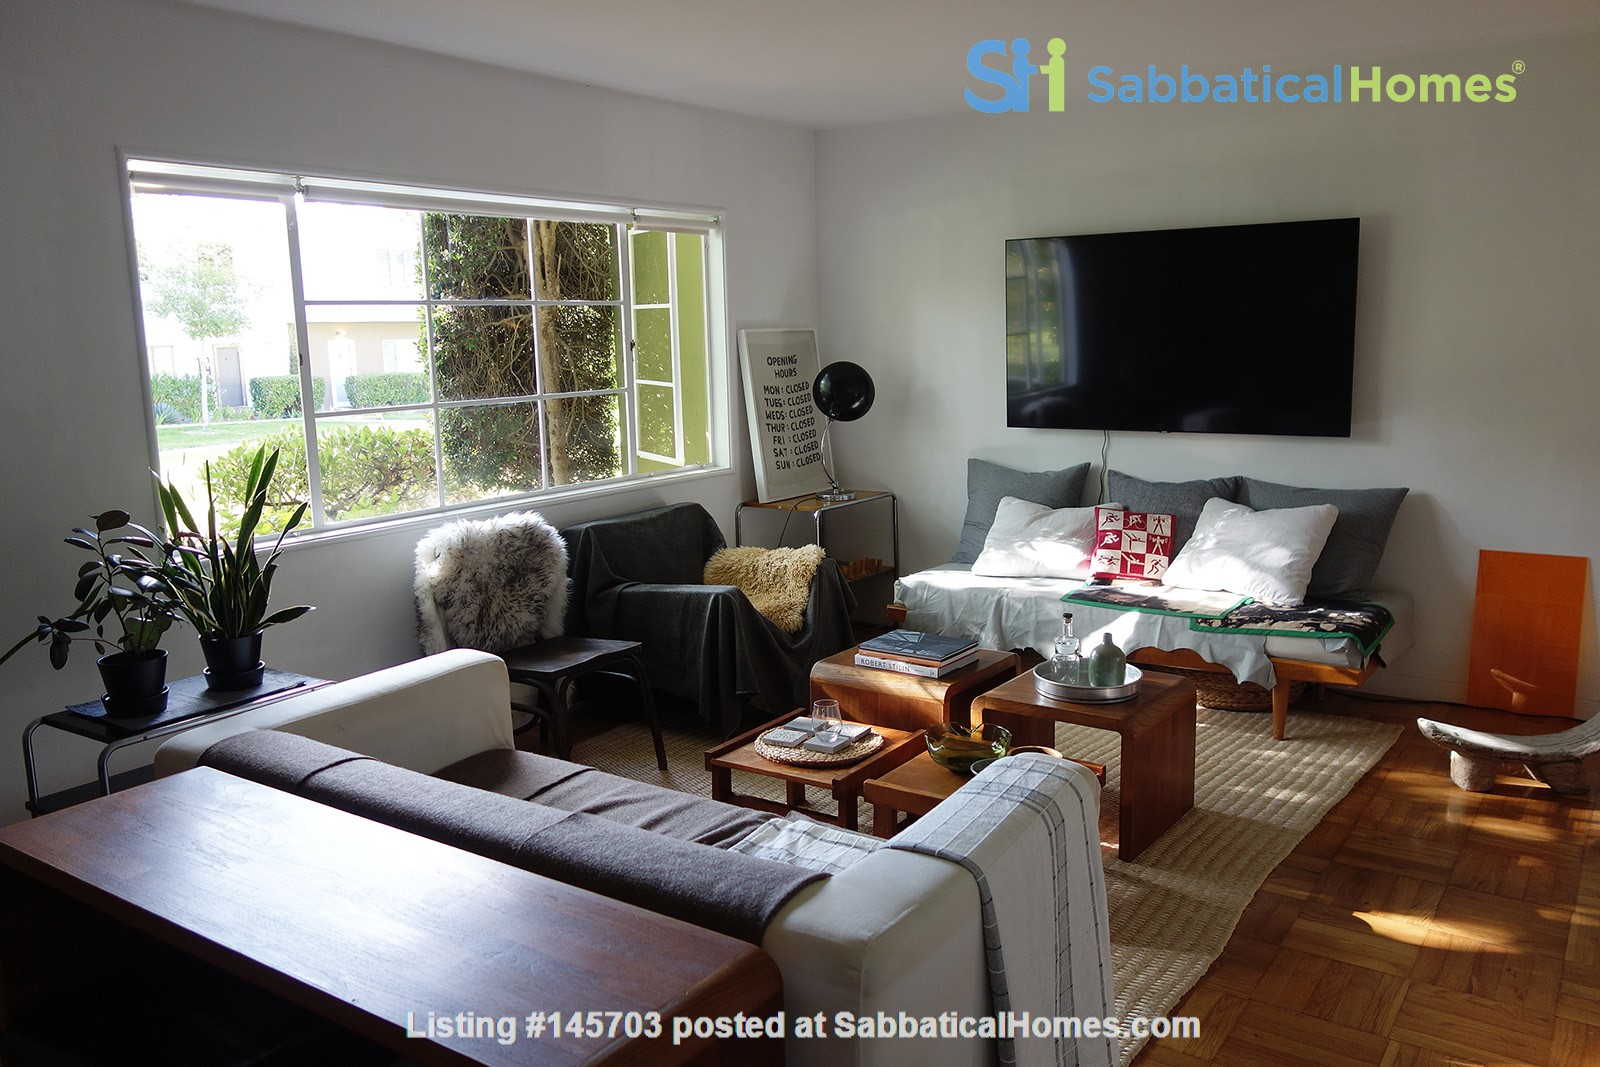 Light-filled 2BR townhouse with large patio in urban oasis in Los Angeles Home Rental in Los Angeles, California, United States 4